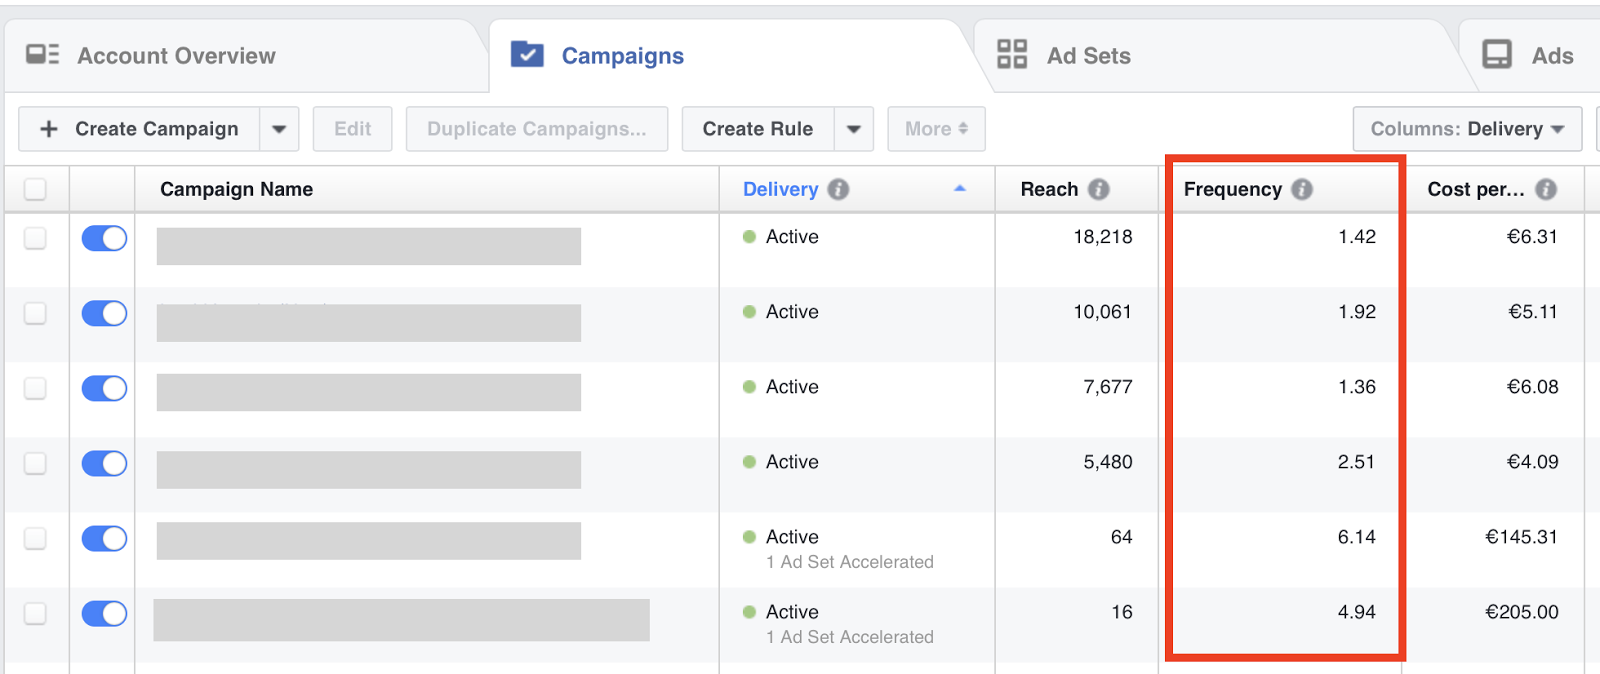 facebook ad frequency per campaign, ad set or specific ads